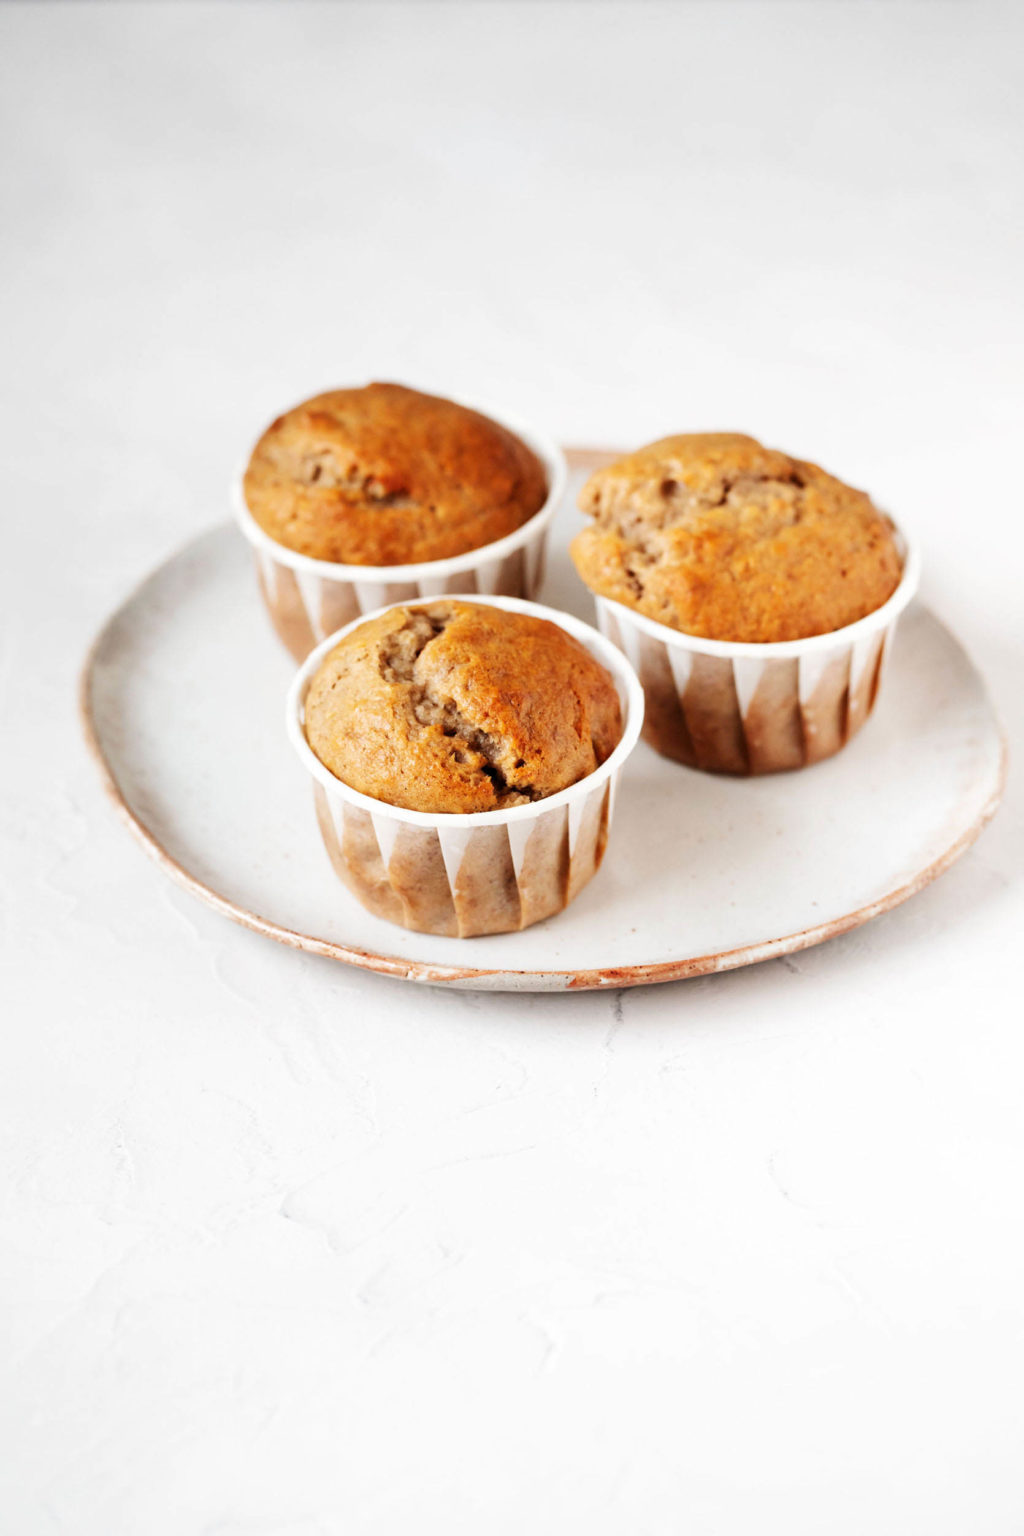 A small, white ceramic plate with a tan rim holds three freshly baked muffins in their muffin liners.